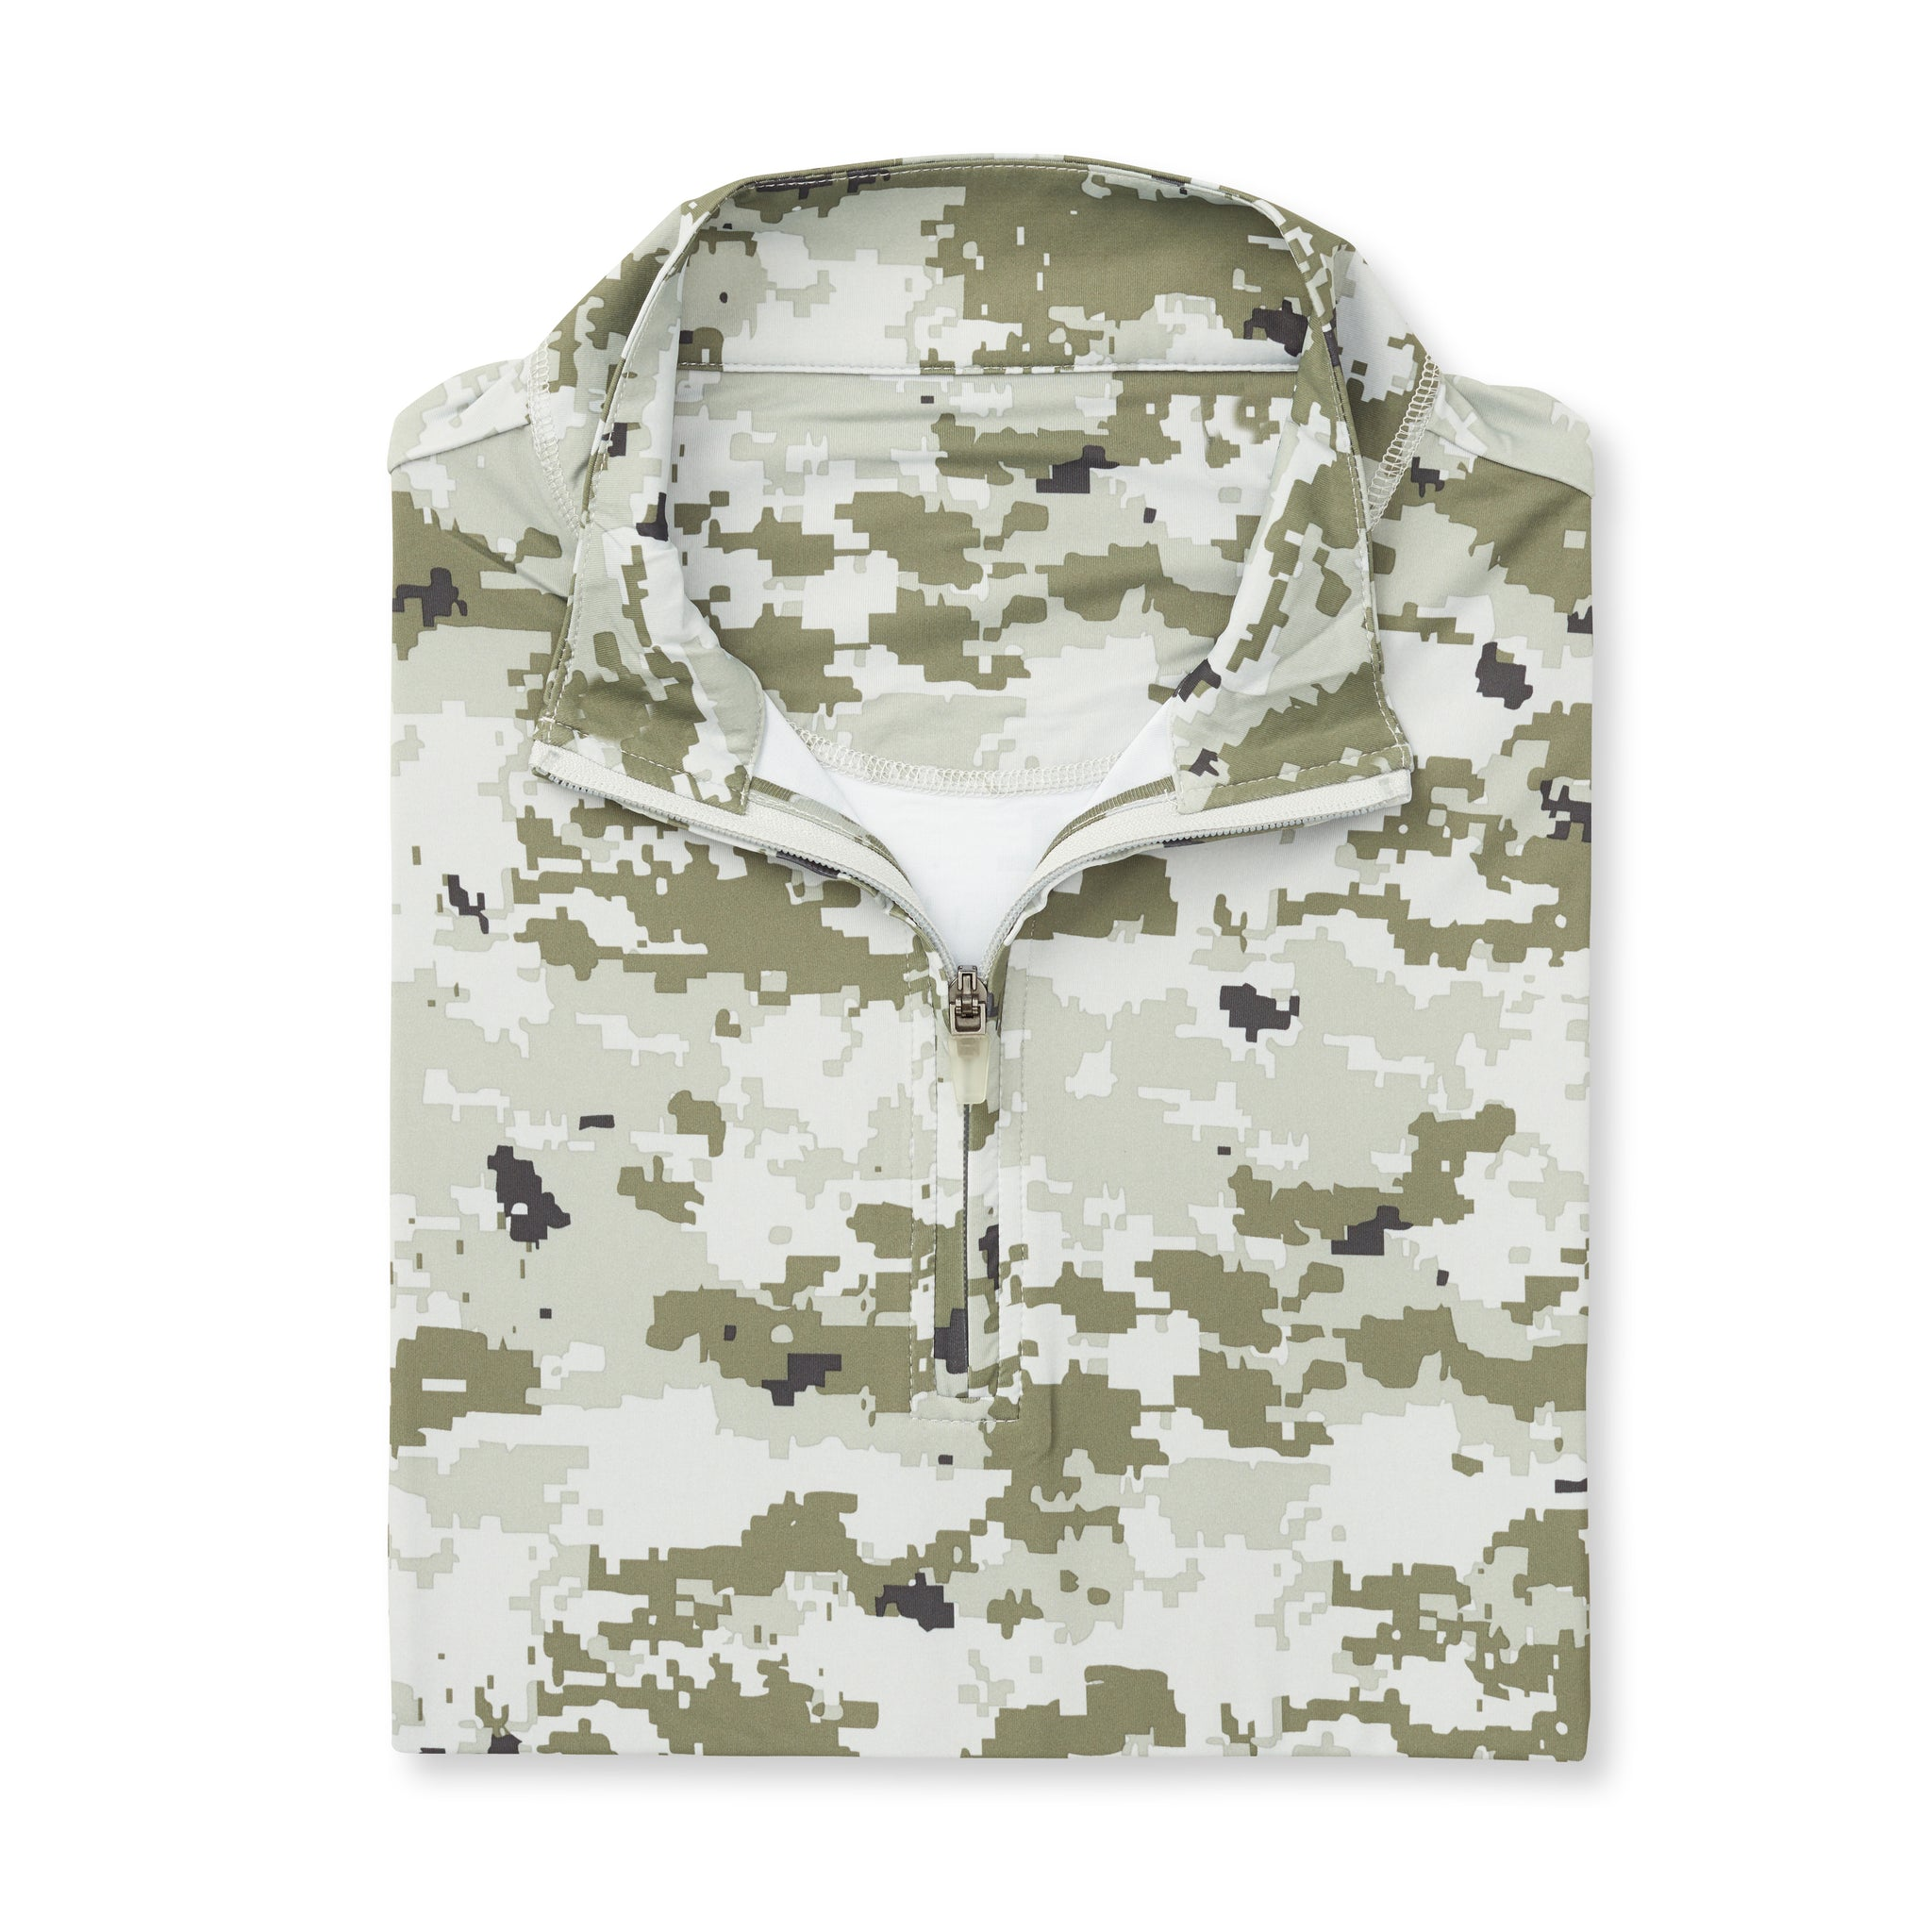 THE PULIDO DIGITAL CAMO HALF ZIP PULLOVER - Desert IS46005